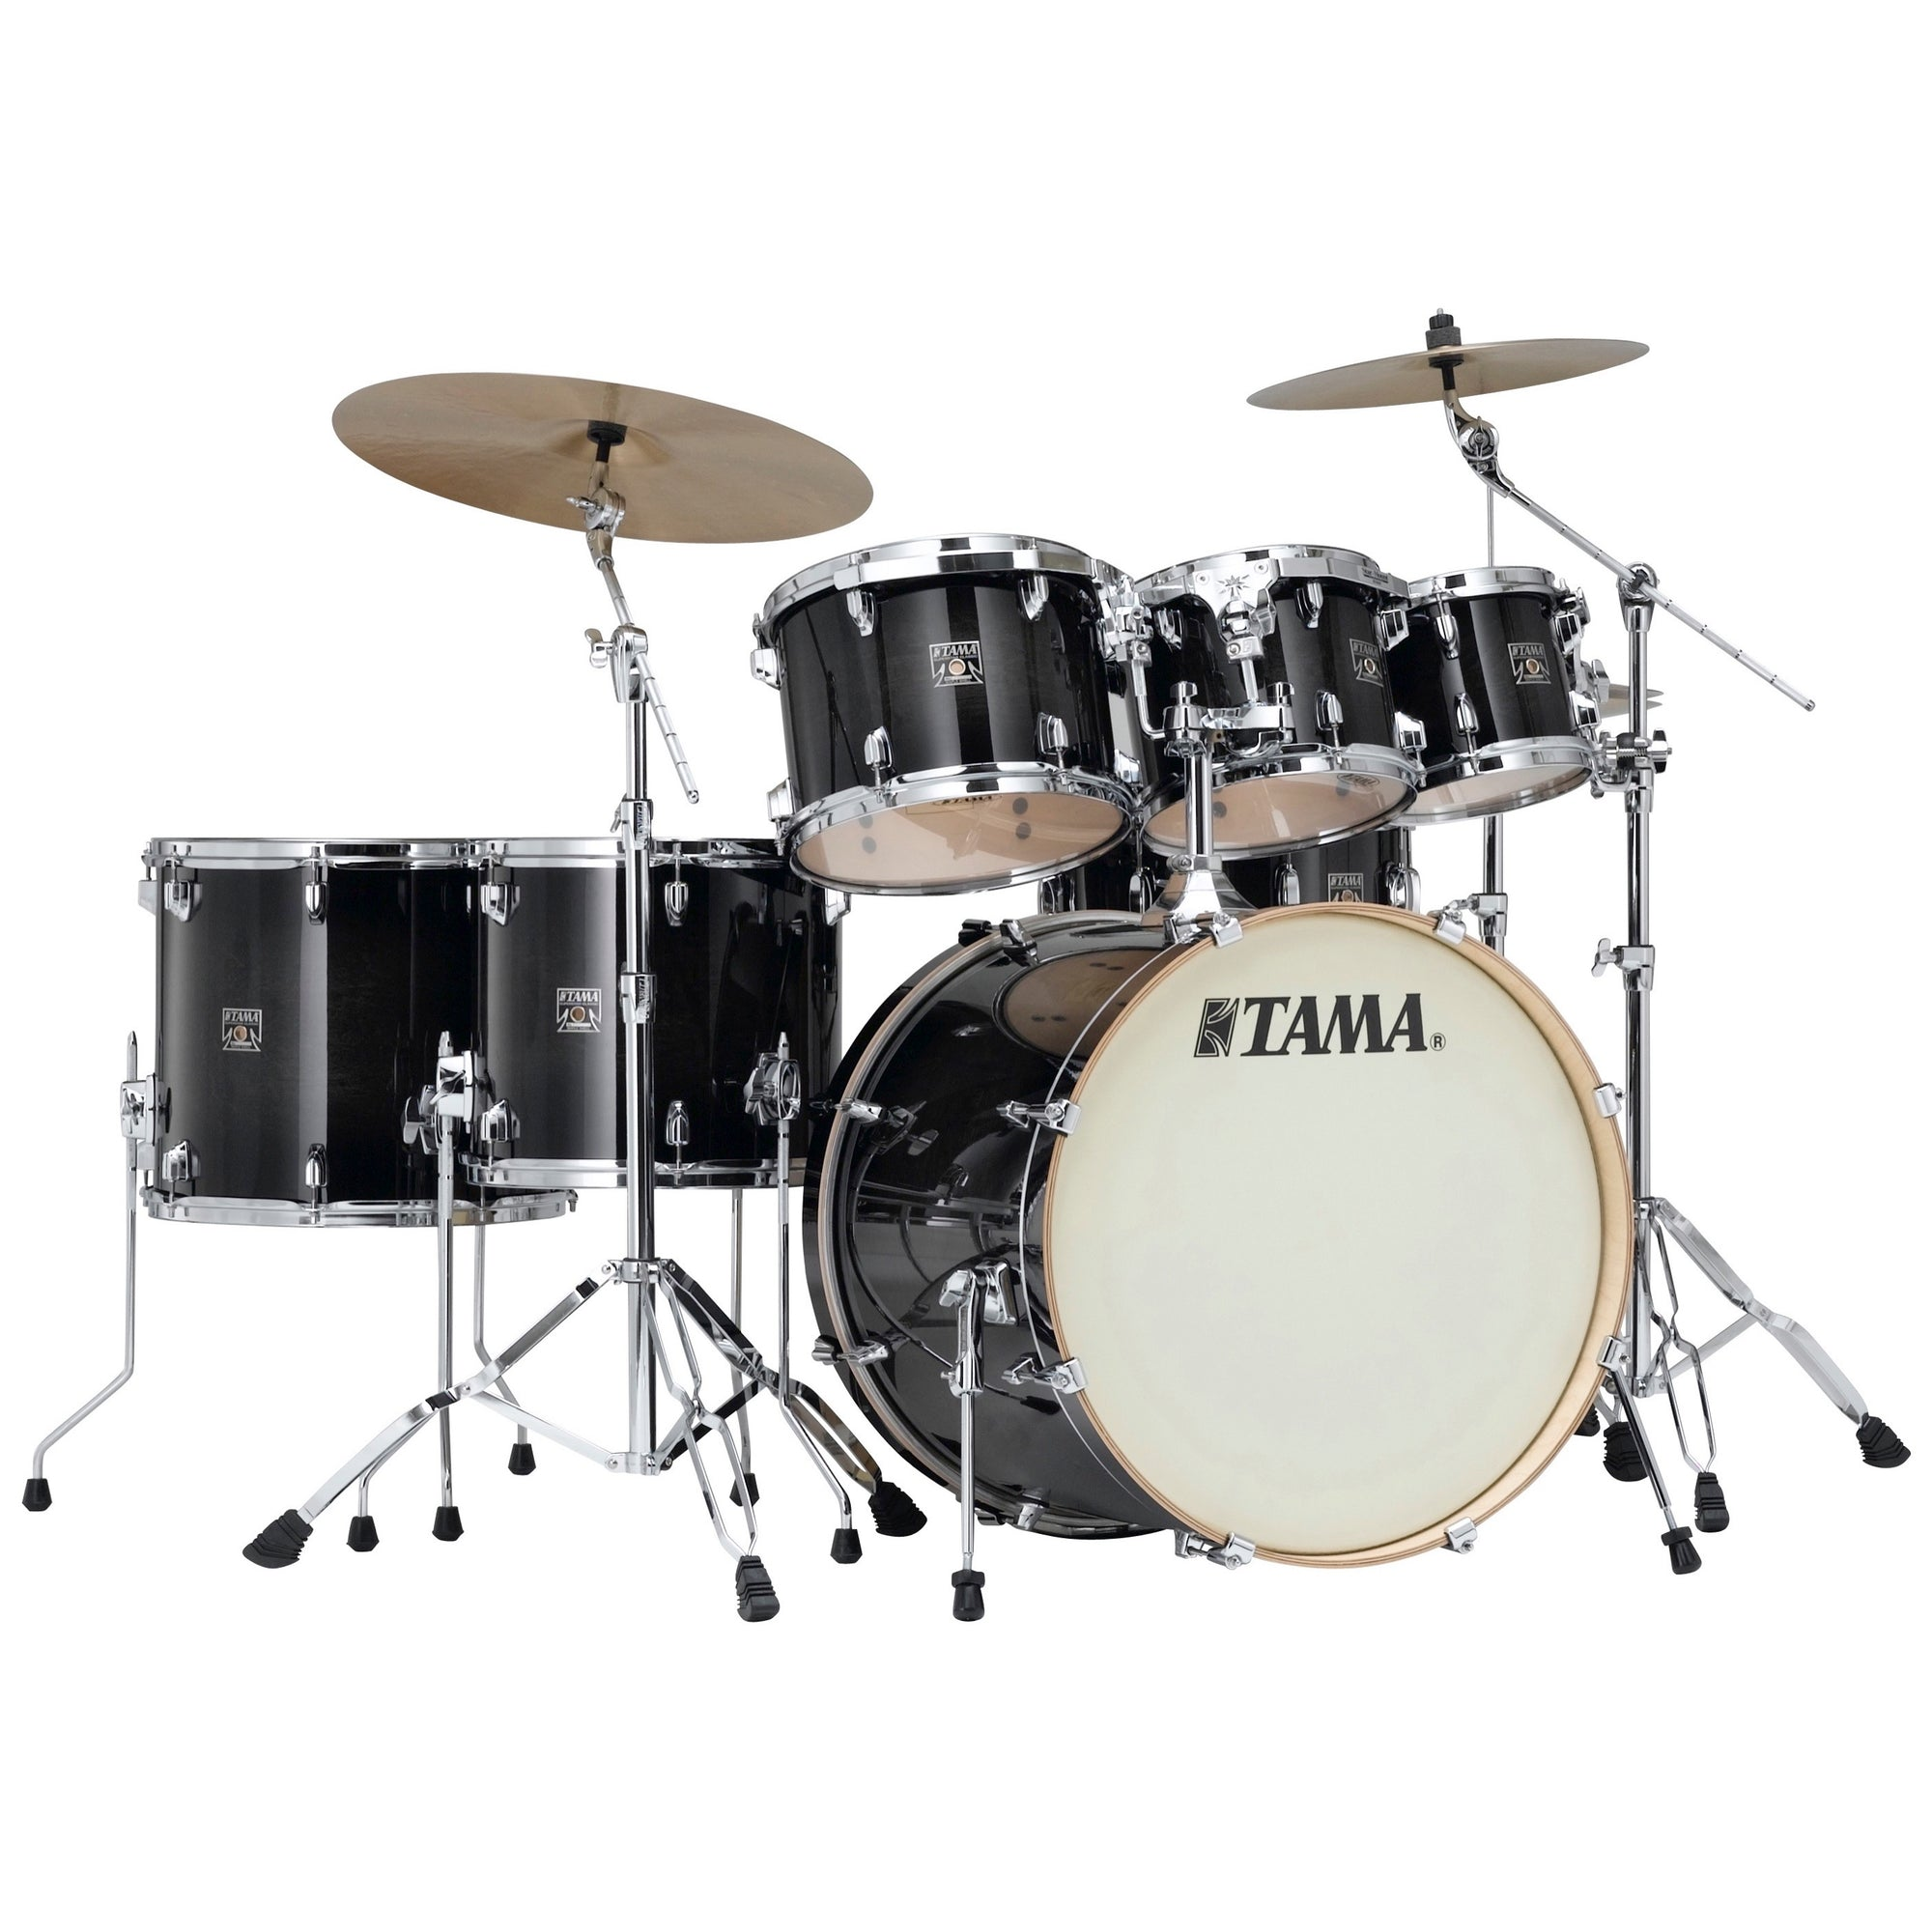 Tama CL72S Superstar Classic Drum Shell Kit, 7-Piece, Transparent Black Burst